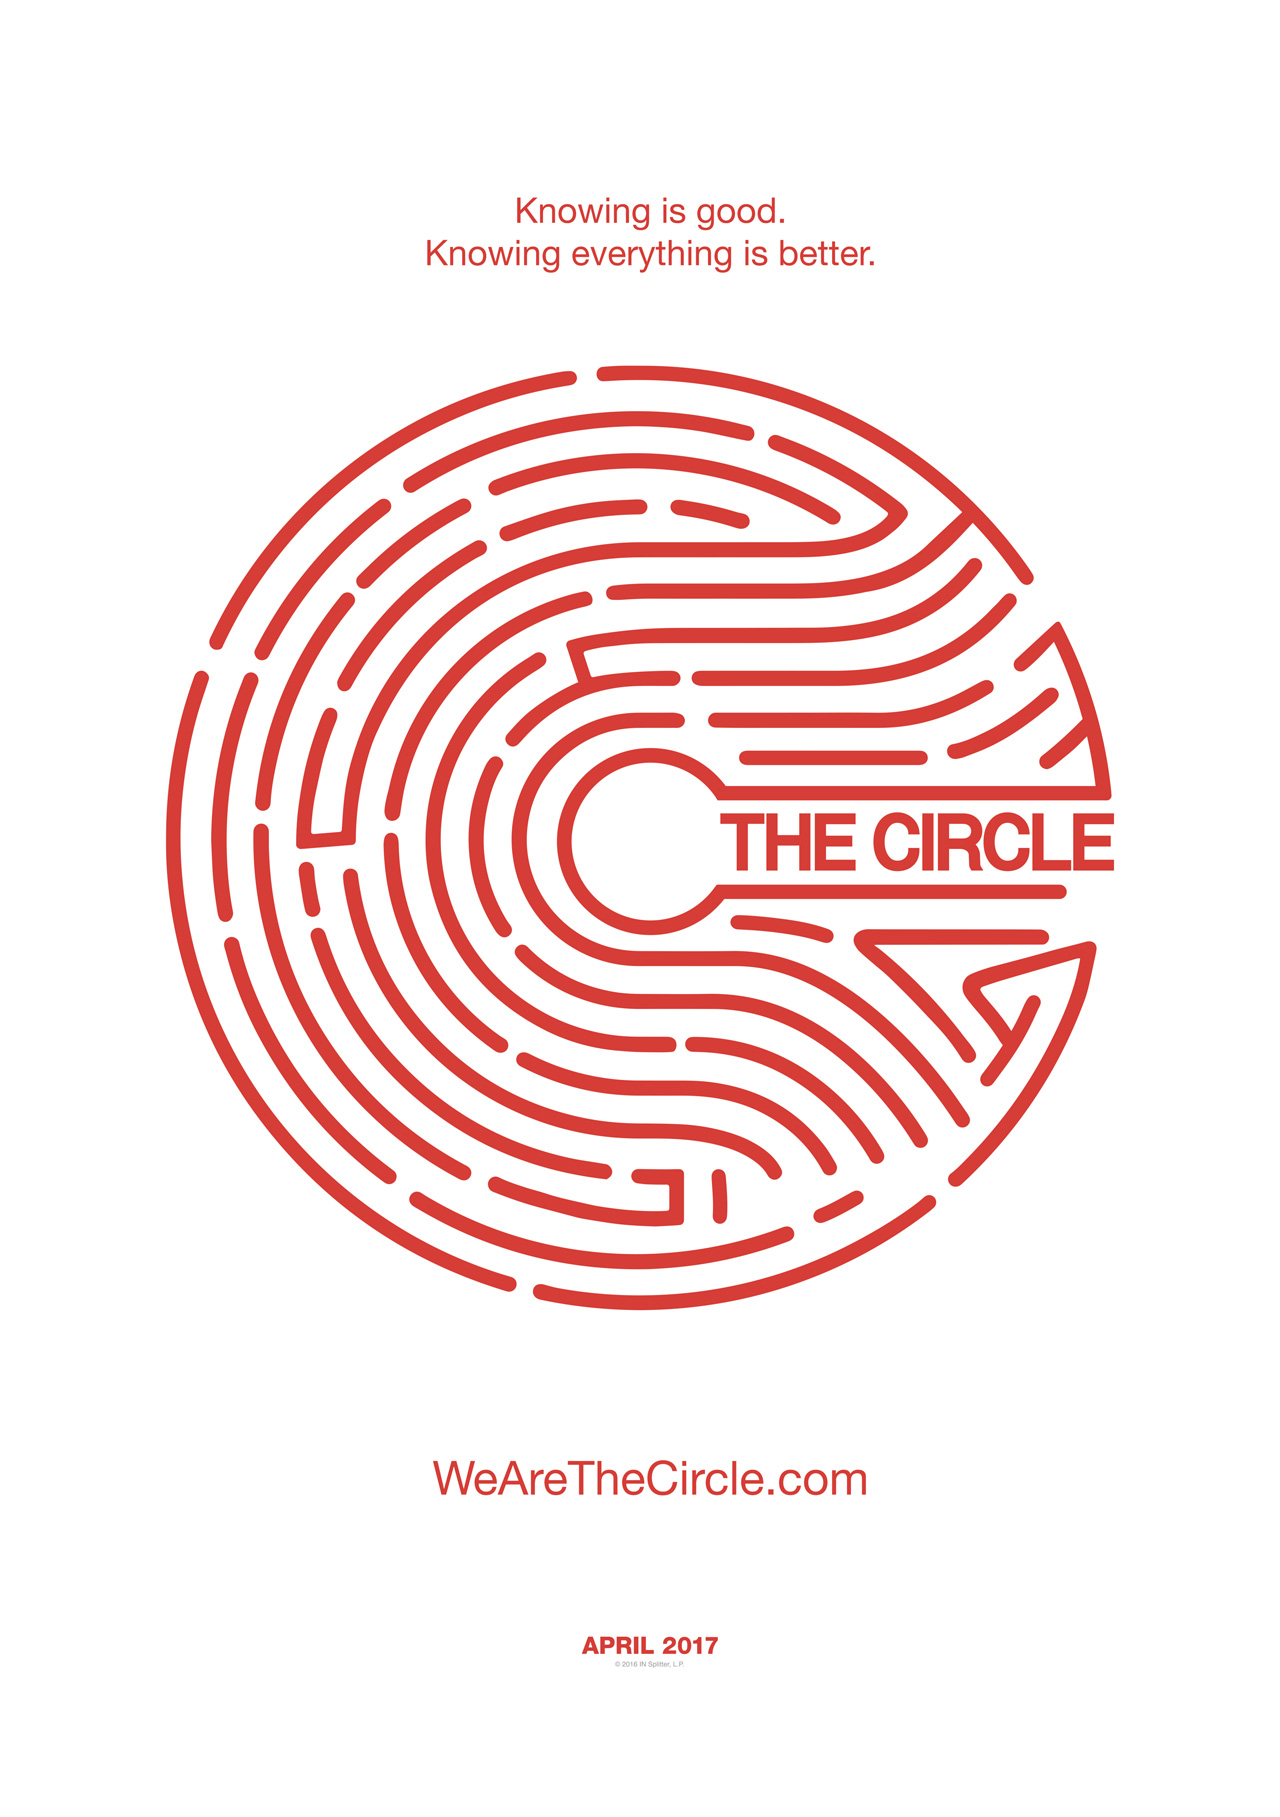 Emma Watson Navigates A Digital Maze In New Trailer For The Circle